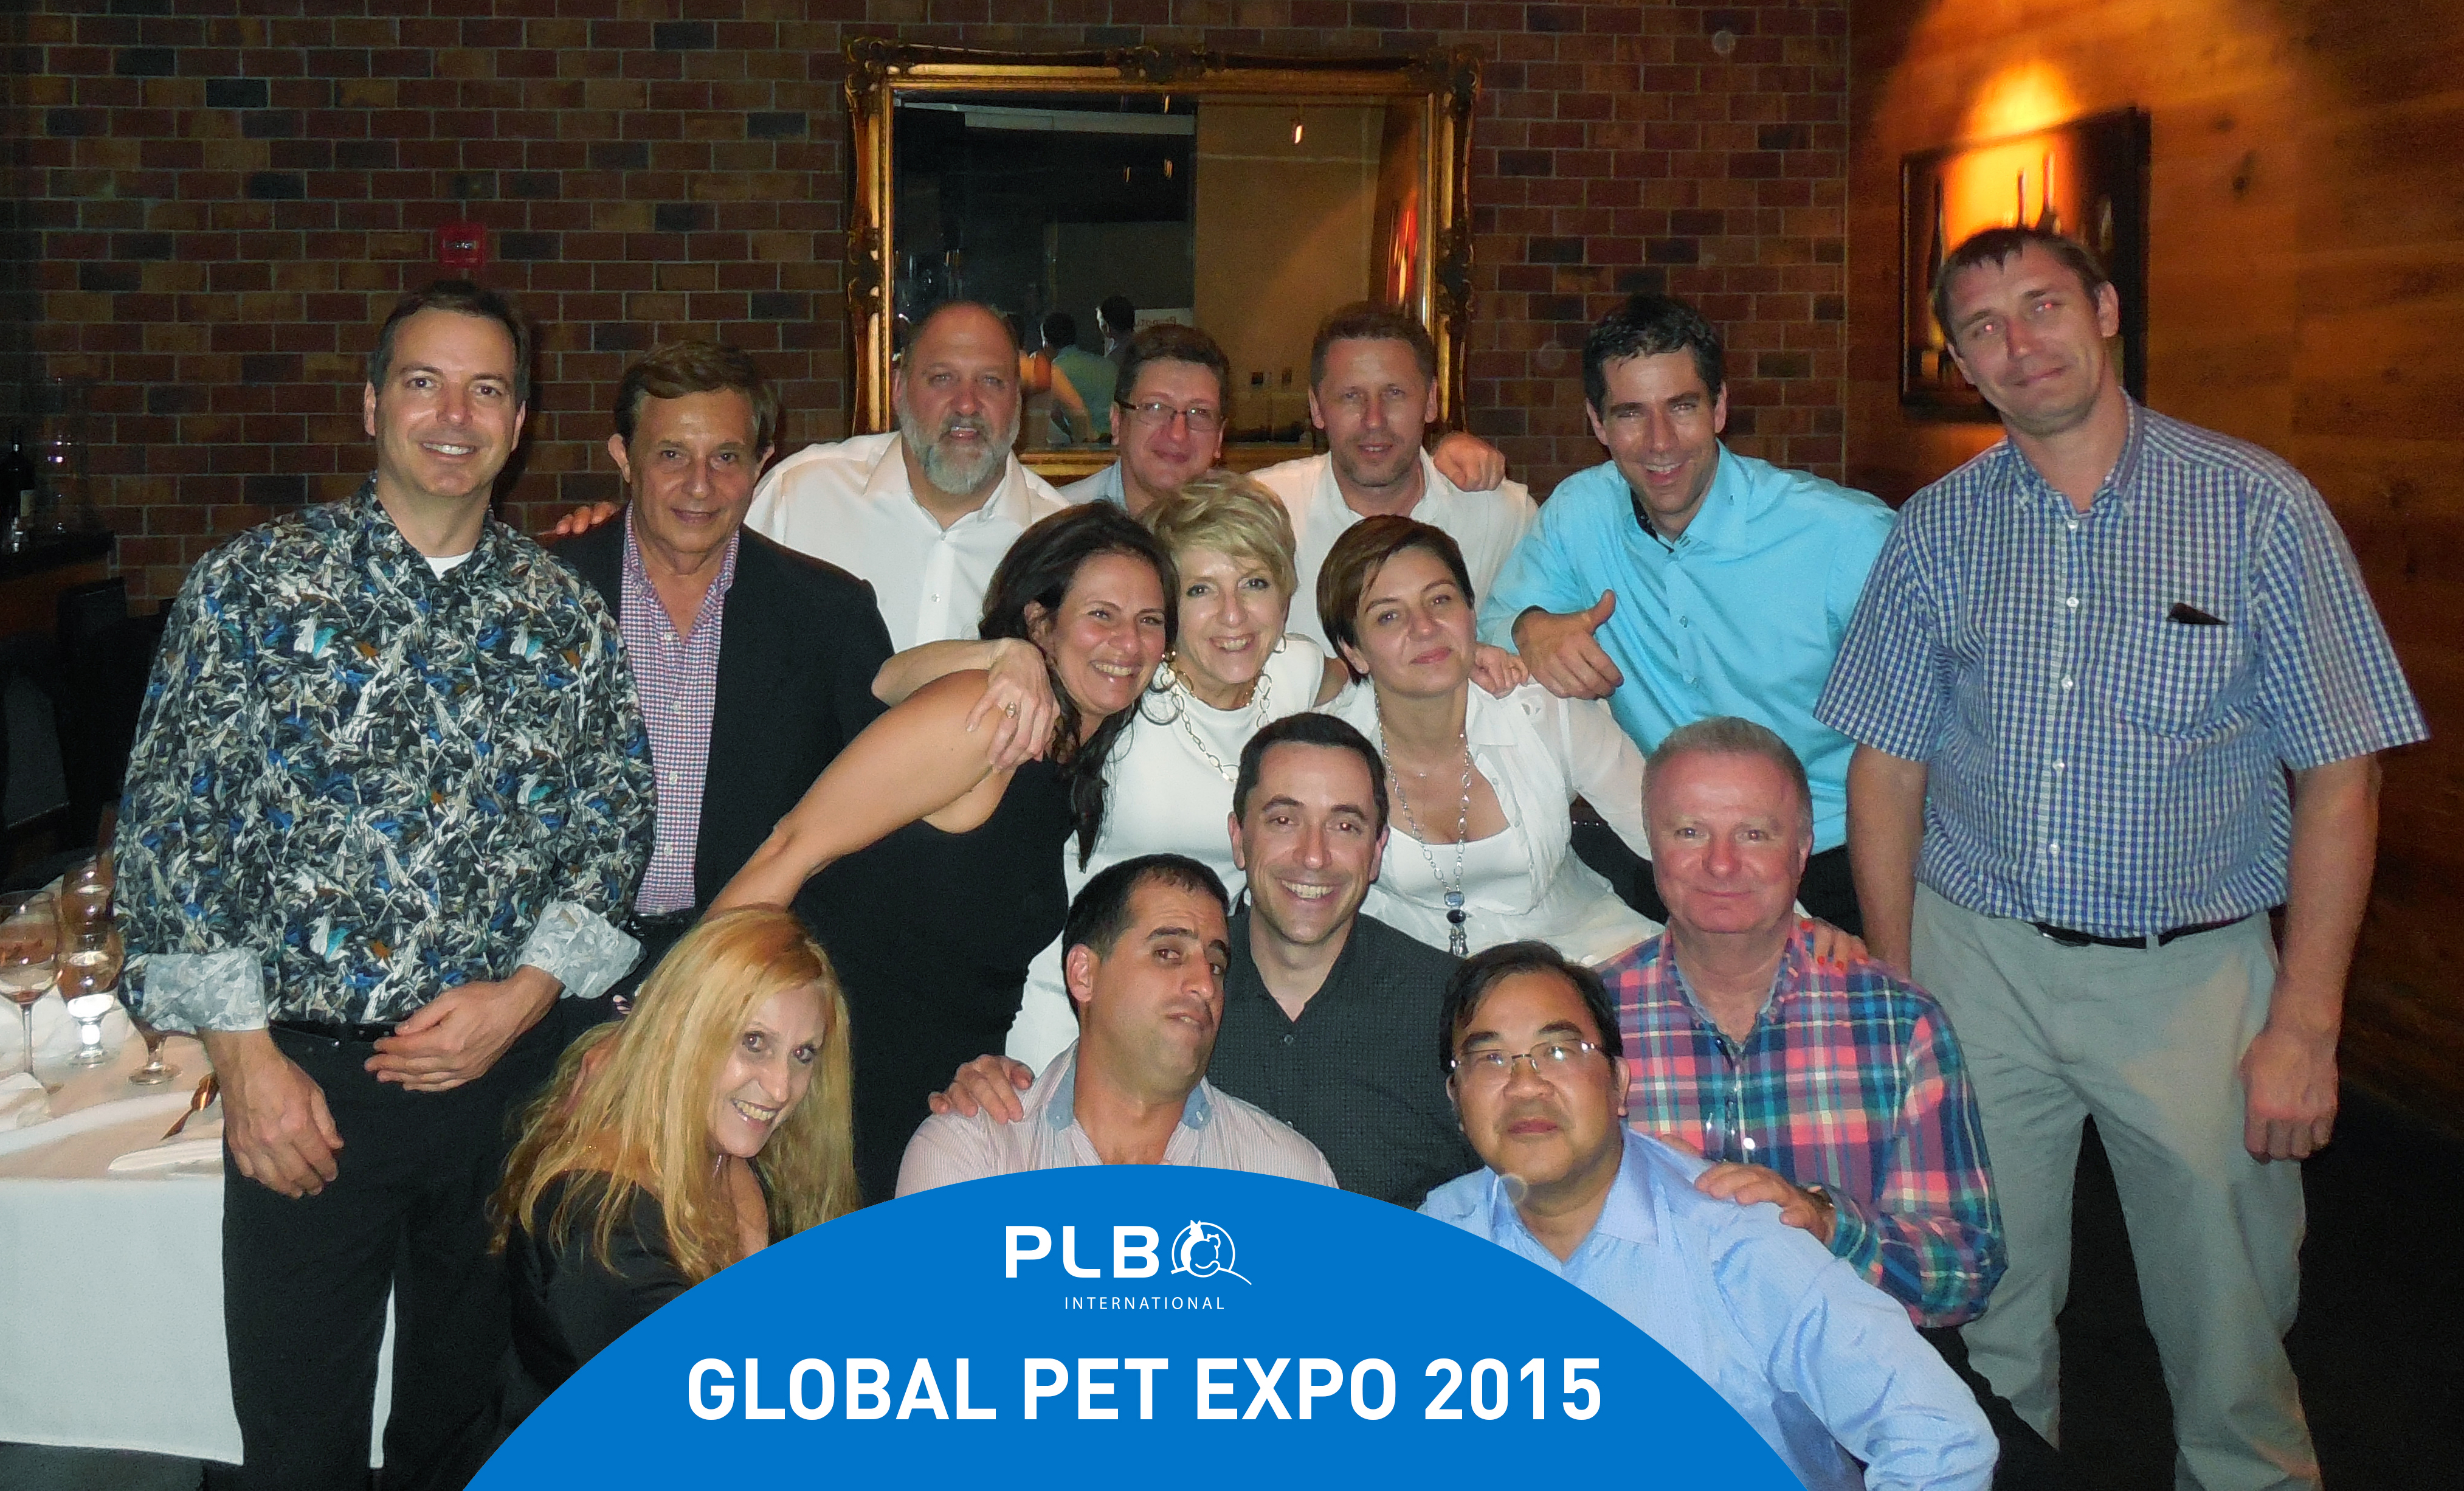 Global Pet Expo 2015 was a success!